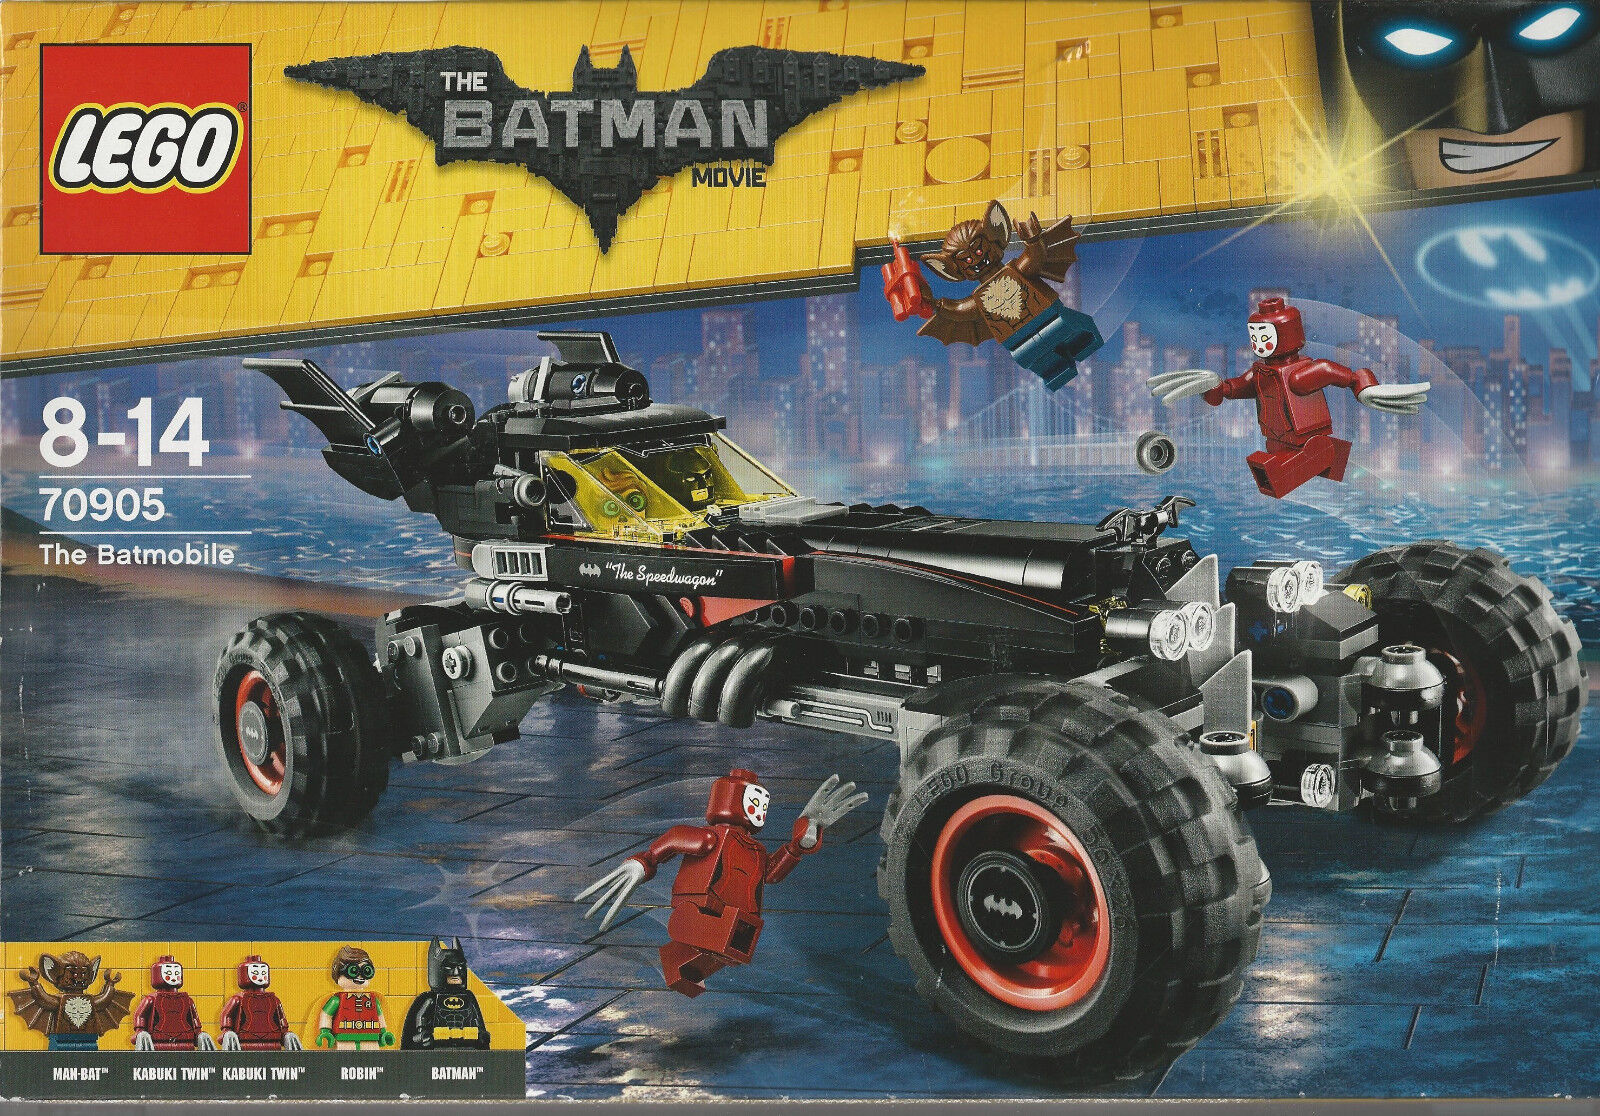 LEGO THE BATMAN MOVIE 70905 THE BATMOBILE New 5 minifigures MAN BAT KABUKI TWIN